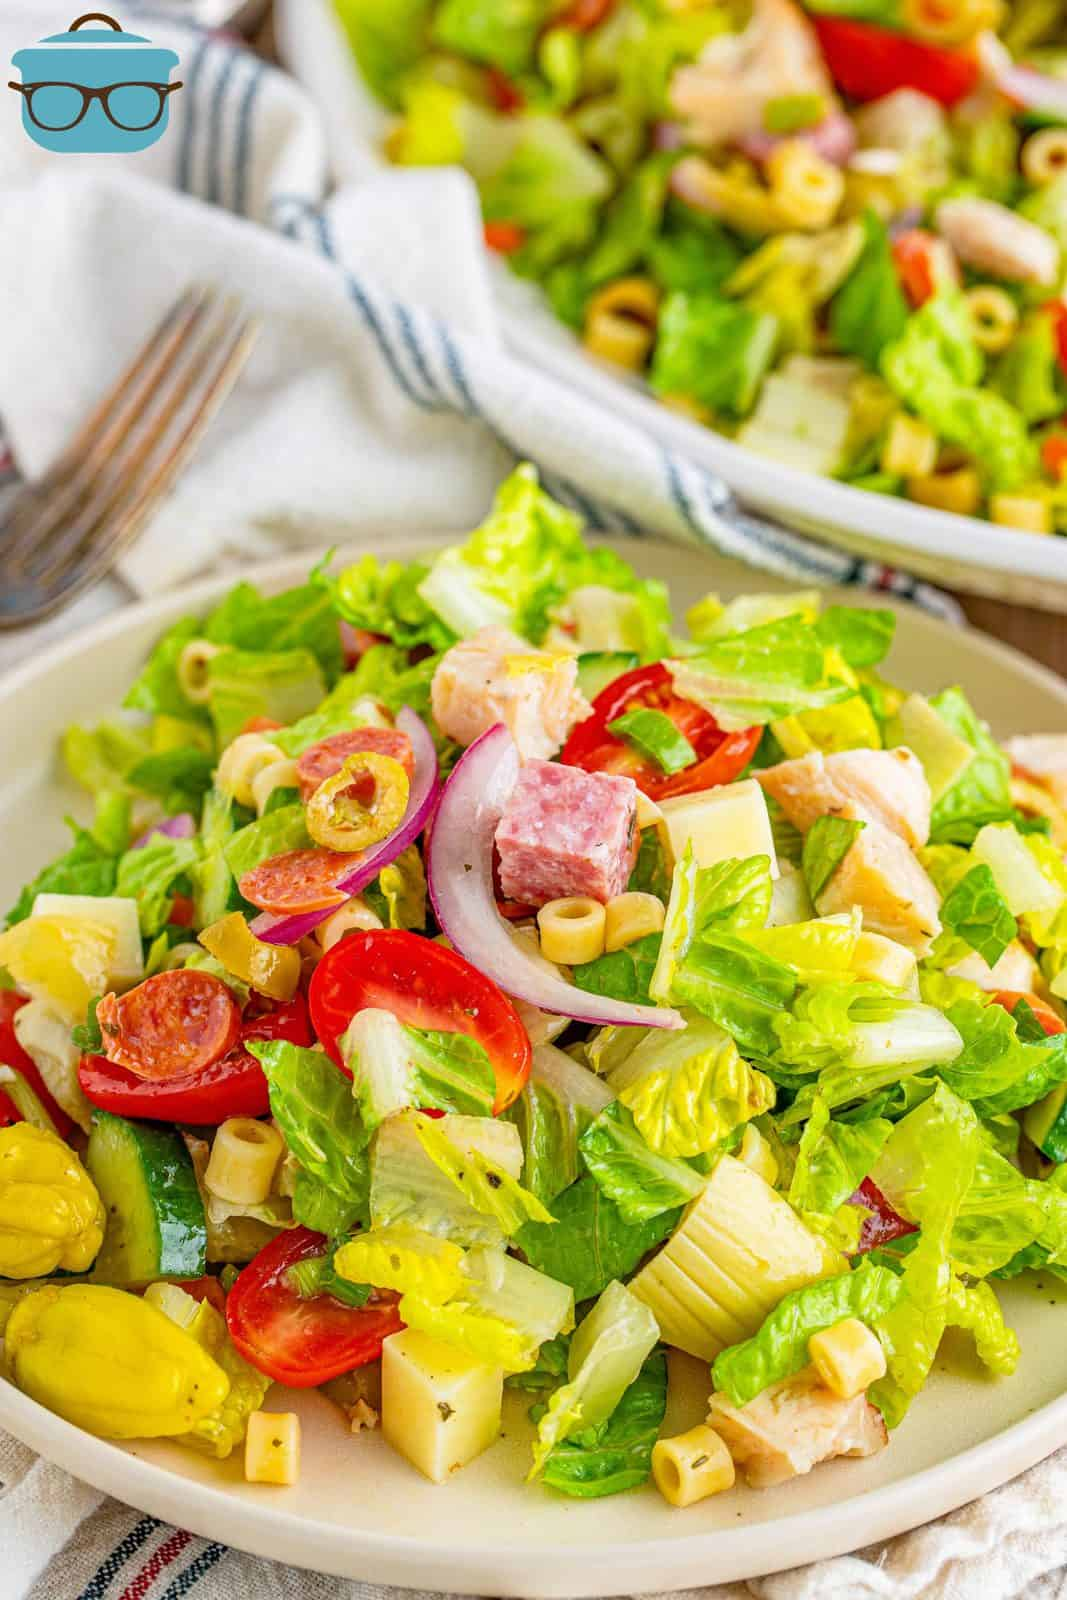 Italian chopped salad shown on a small white salad plate.